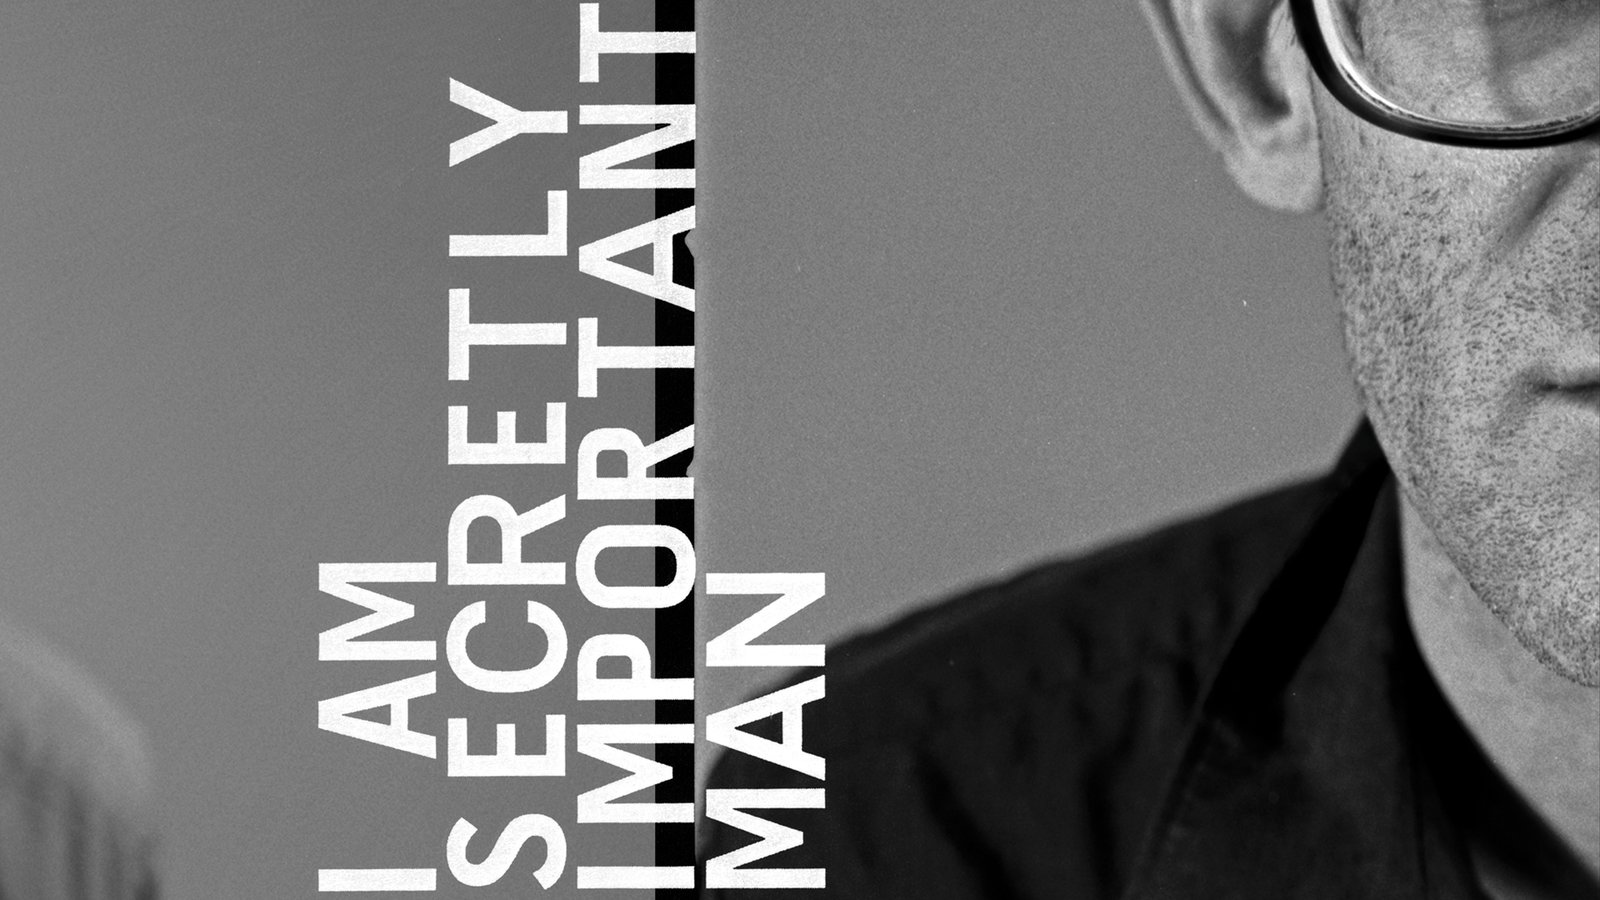 I am Secretly an Important Man - The Life and Work of Poet Steven J. Bernstein